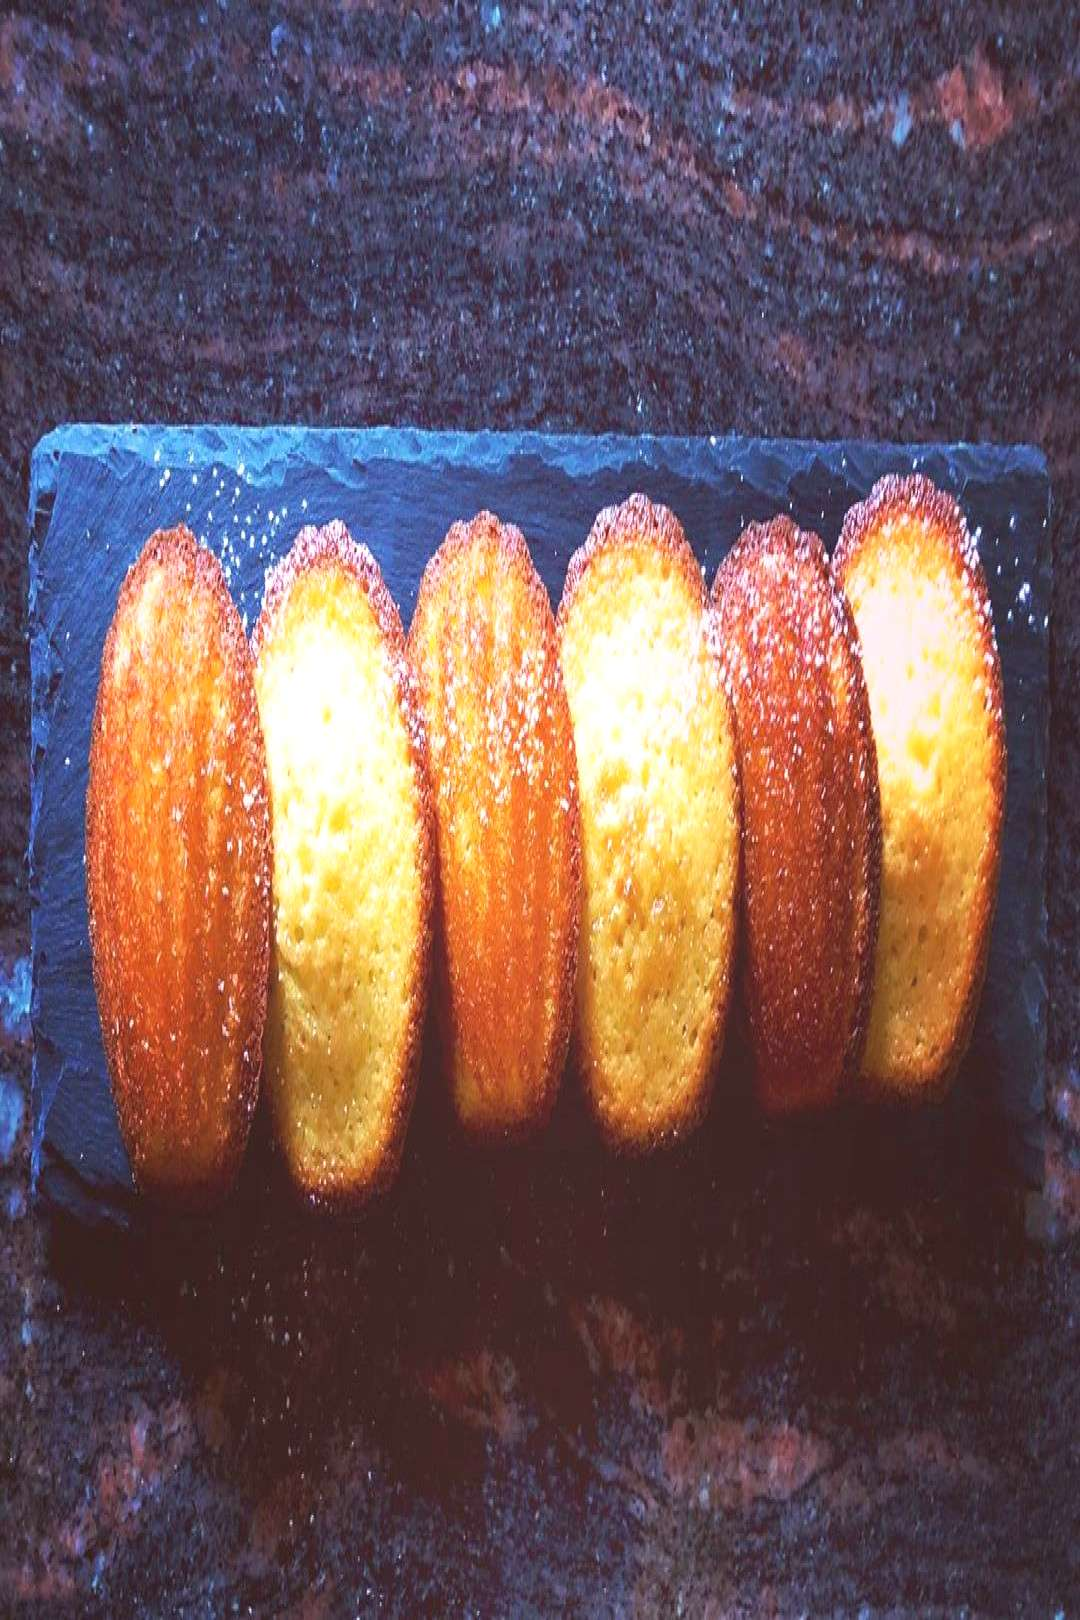 Madeleines #frenchfoodporn #frenchbaking #delicious #desserts #de